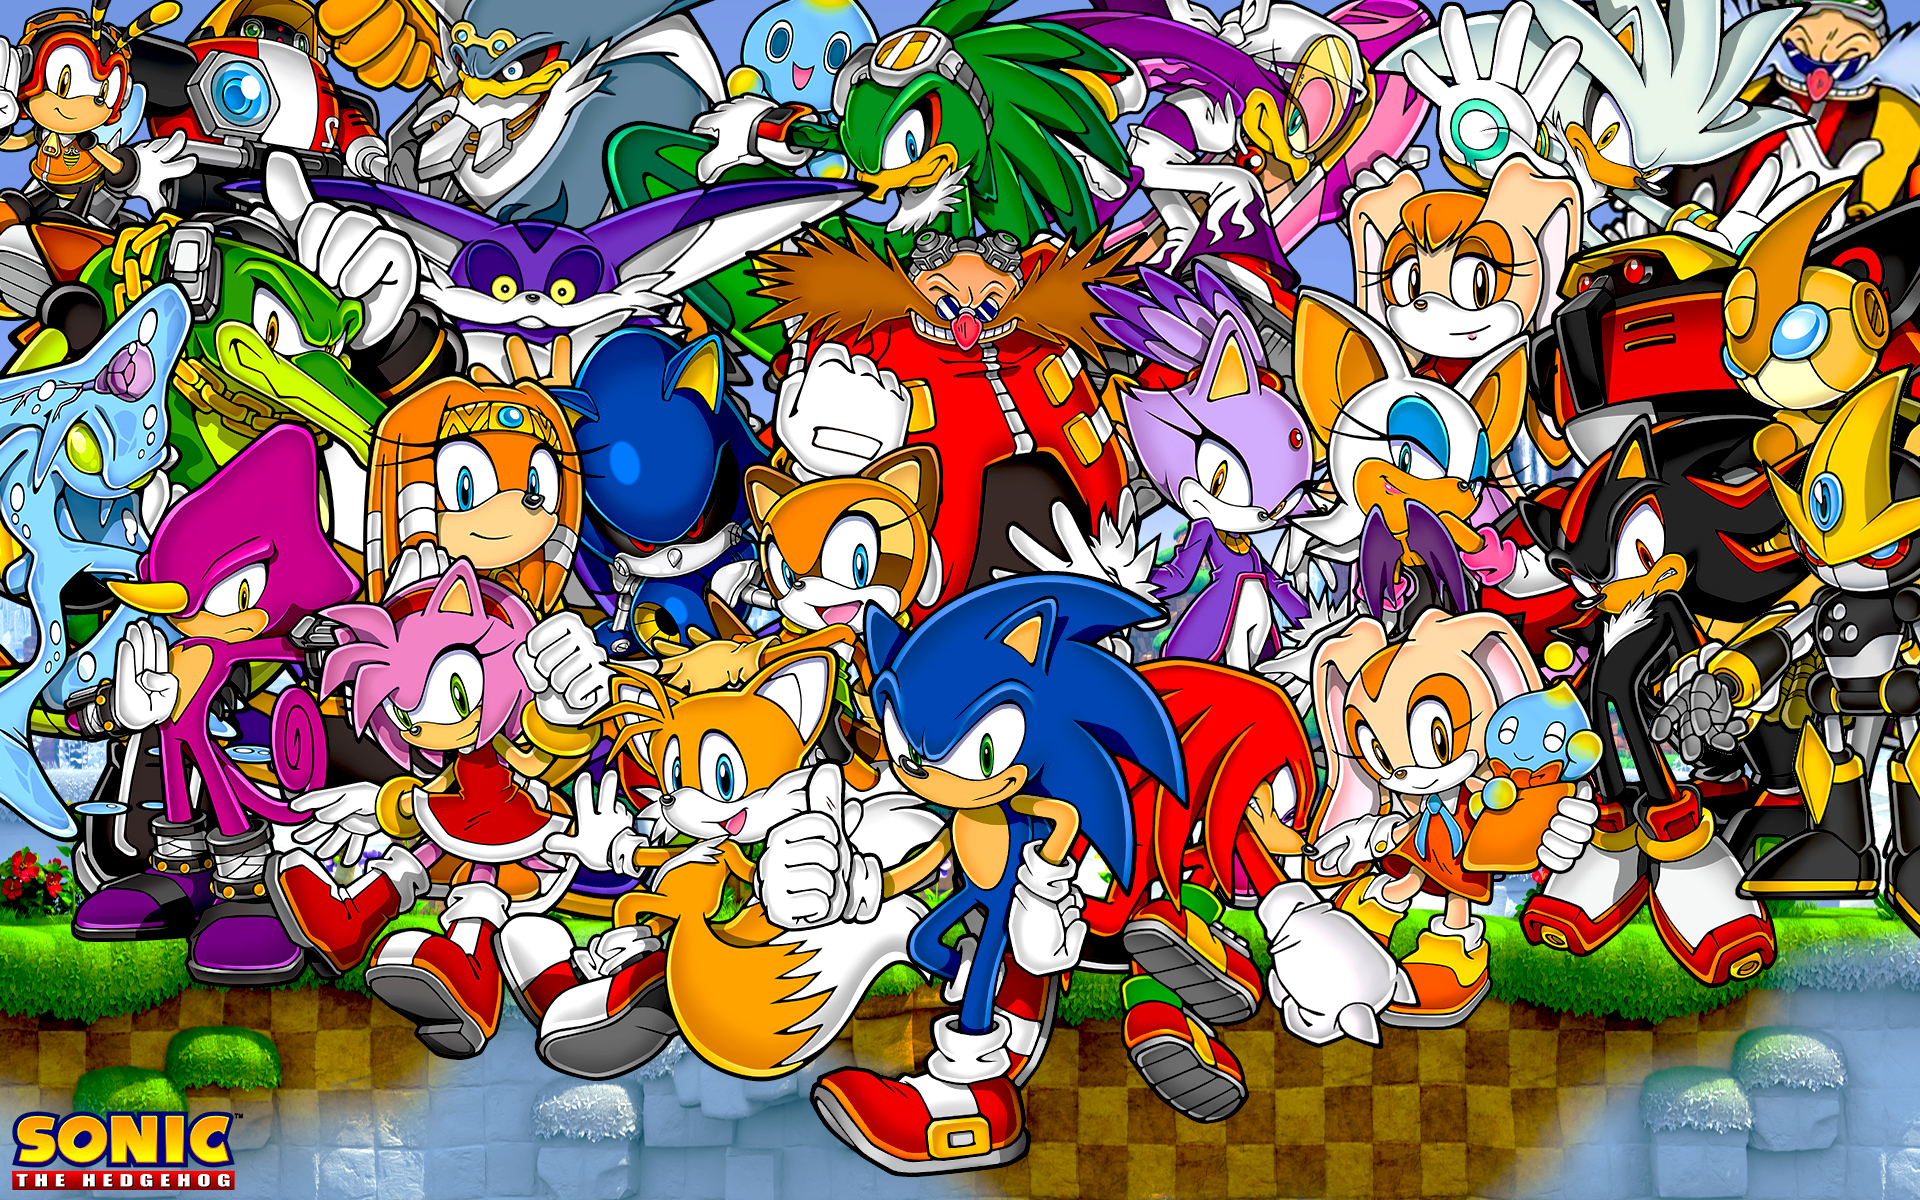 Sonic The Hedgehog And Friends Wallpaper by SonicTheHedgehogBG